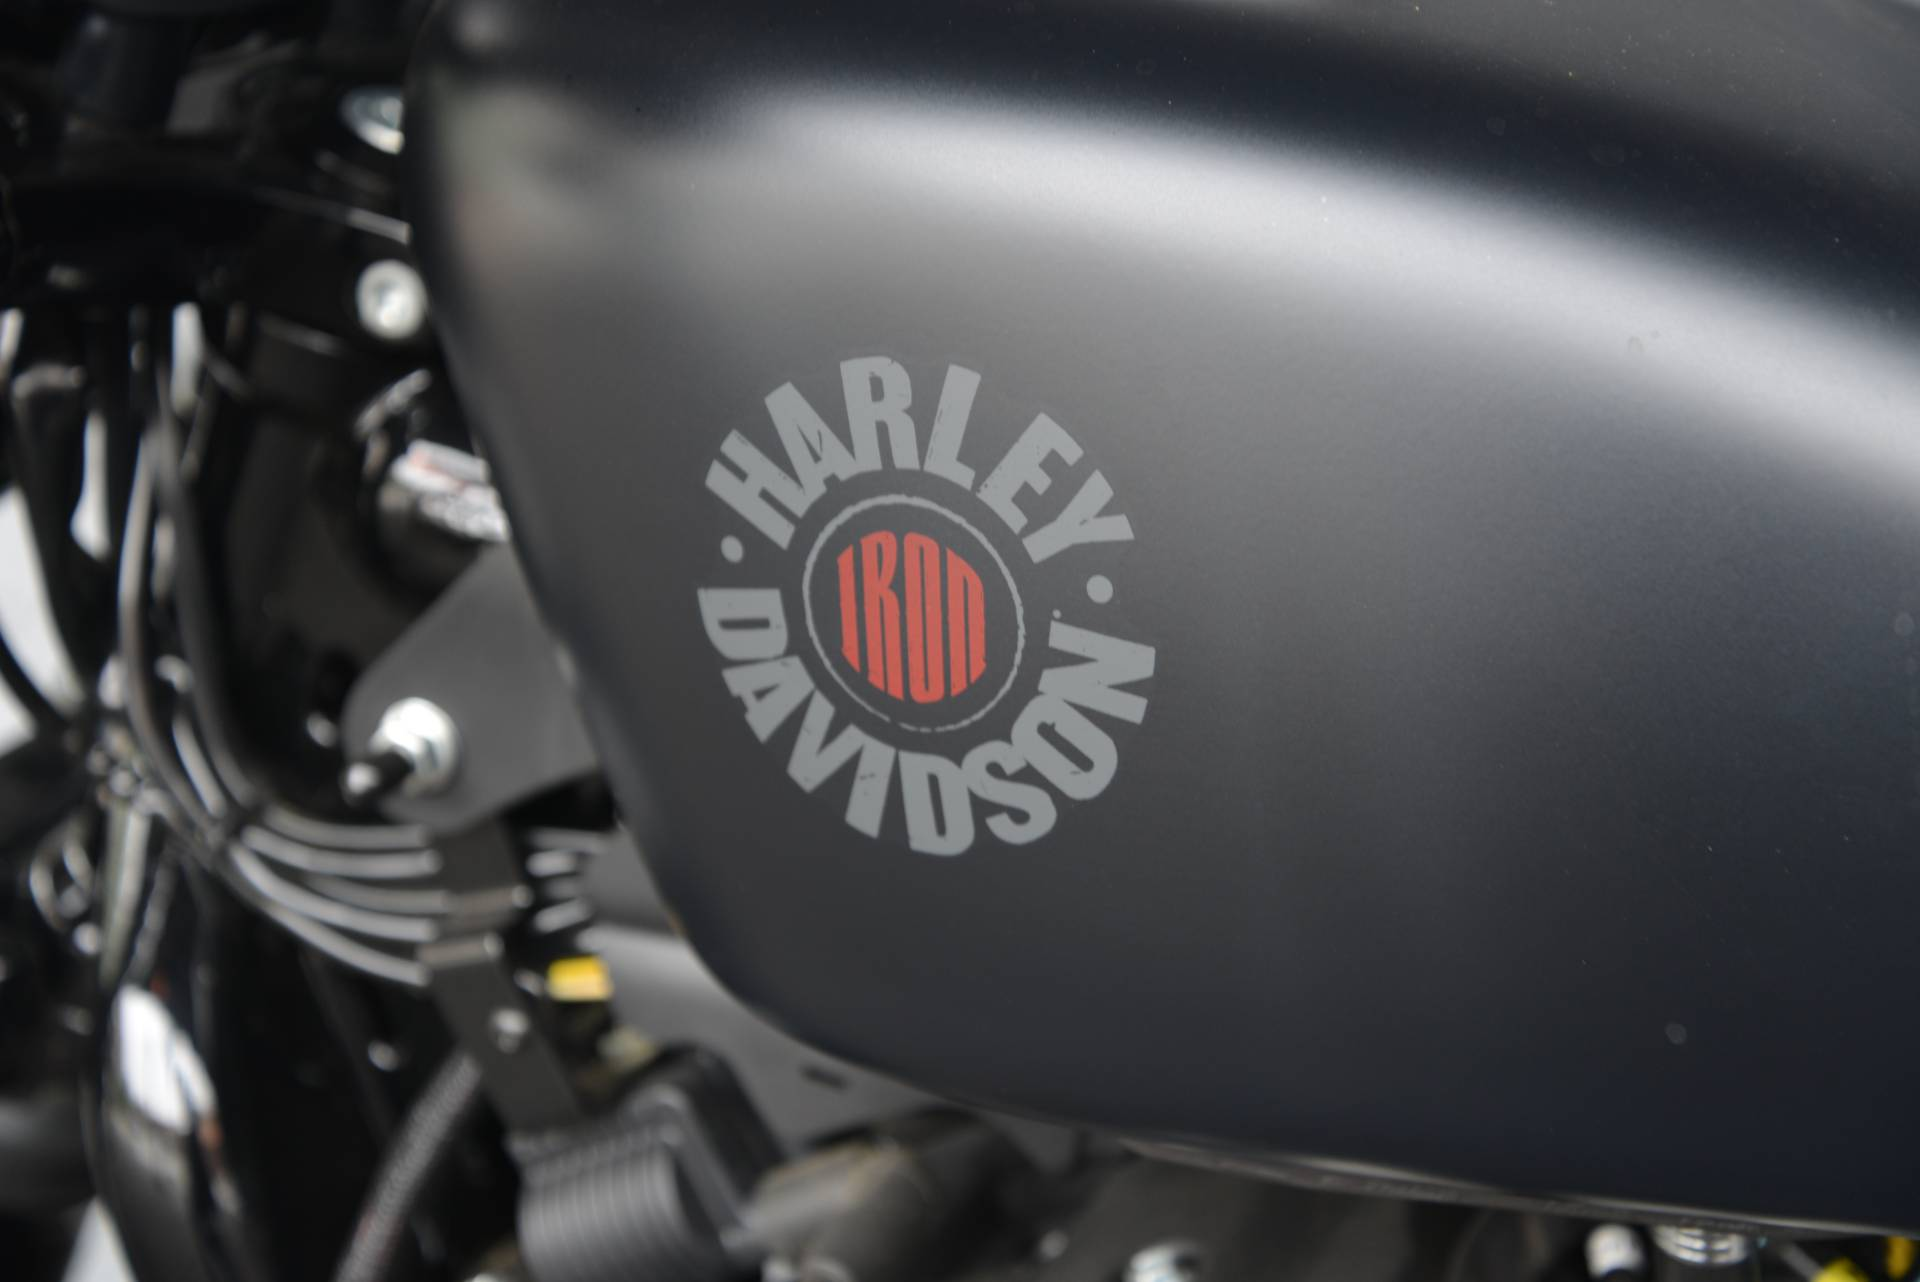 2019 Harley-Davidson IRON 883 in Lakewood, New Jersey - Photo 14